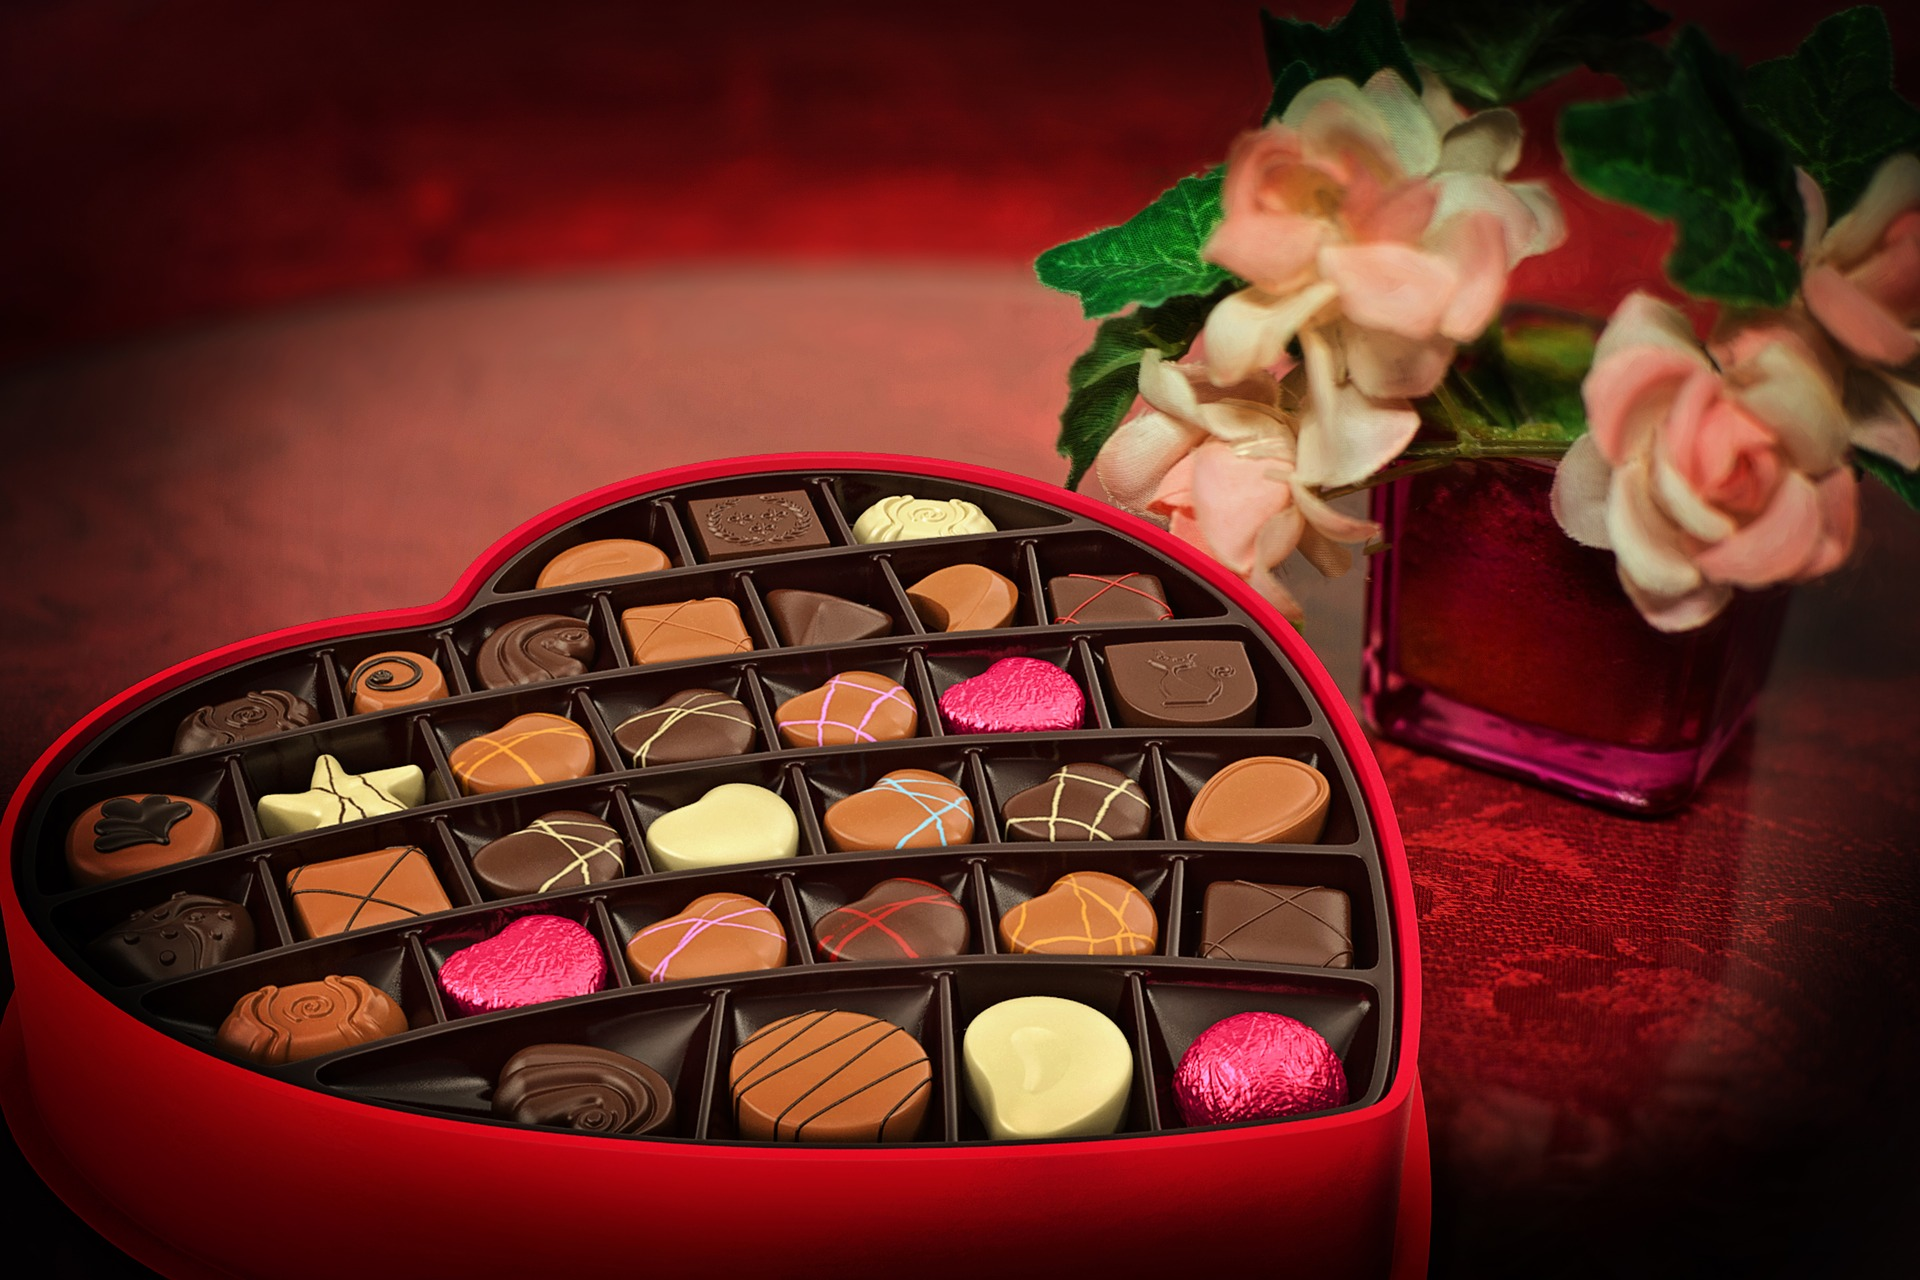 60 million pounds of chocolate candies are sold during the week of Valentine's Day